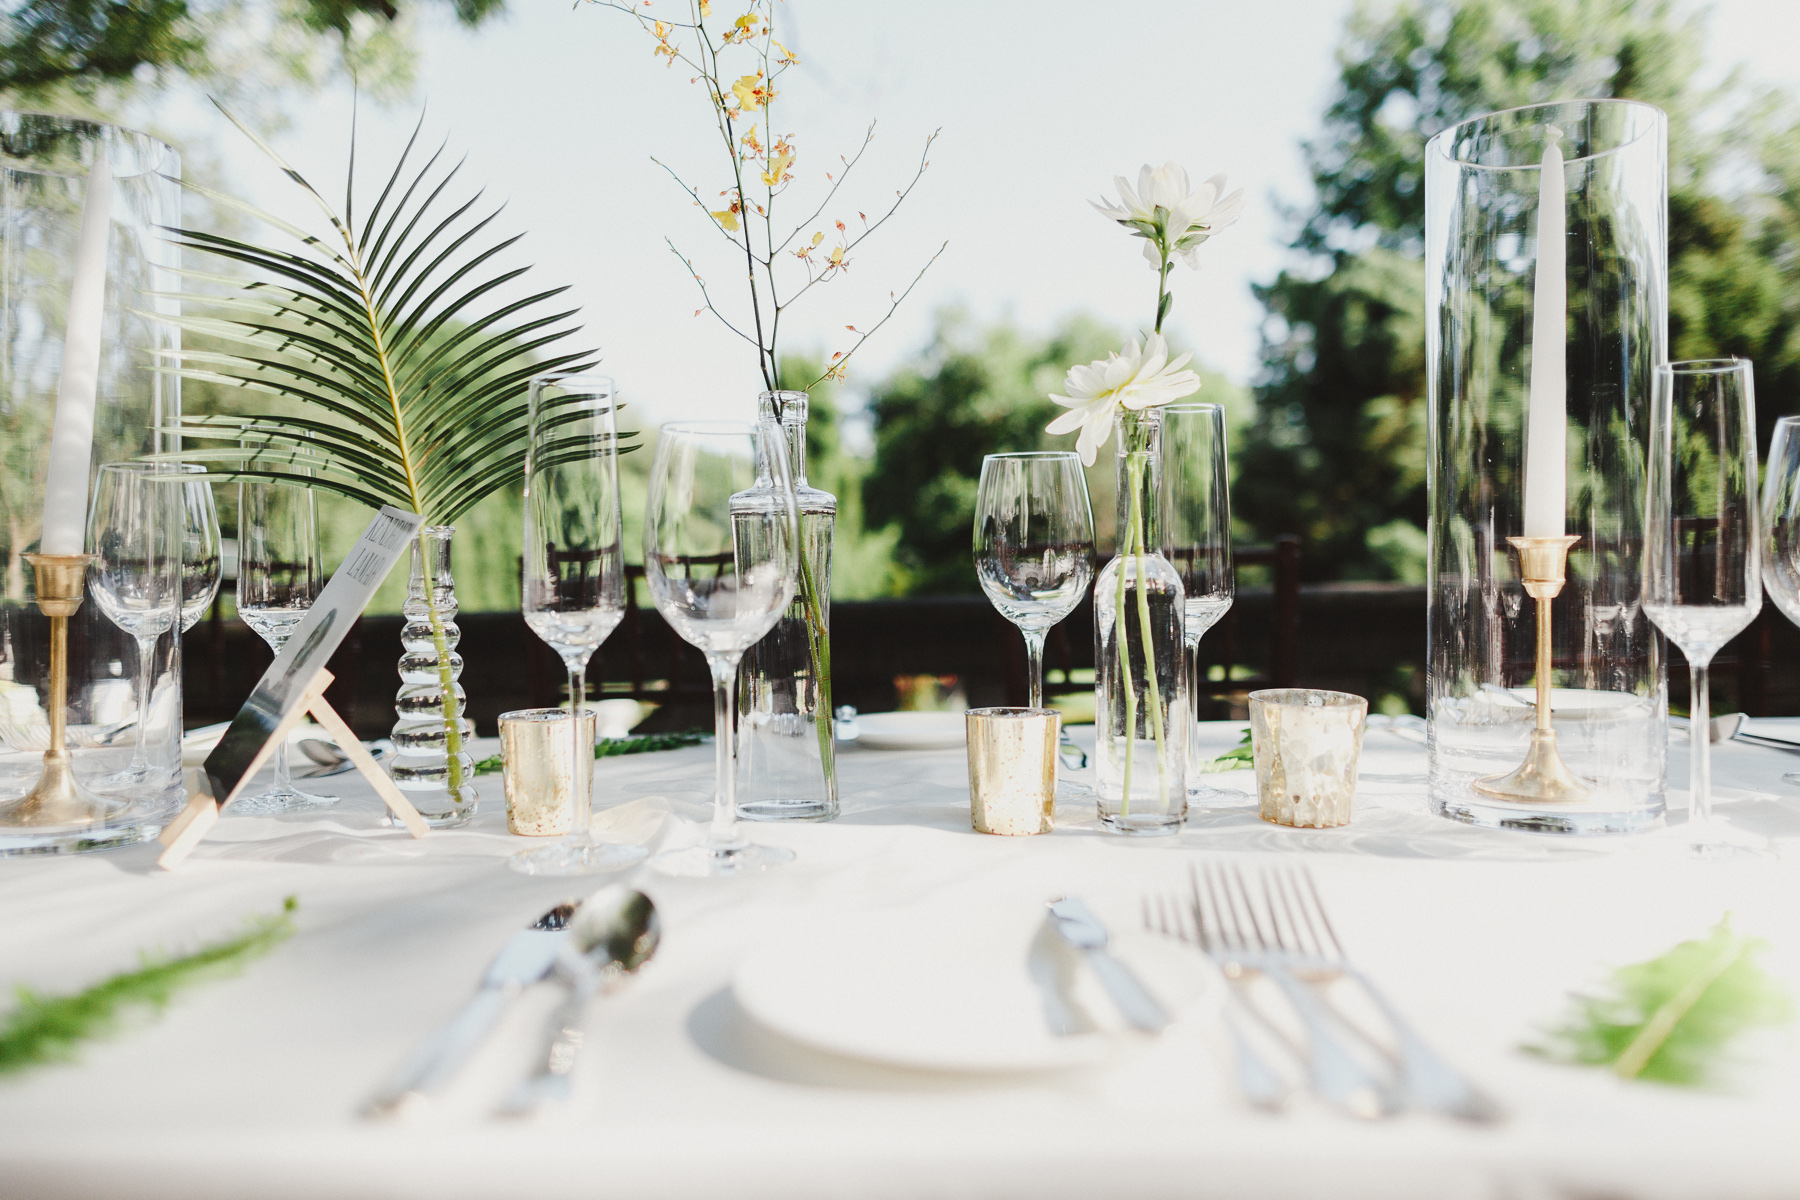 What You Should Know About Garden Weddings - Outdoor Wedding Tips - by Toronto Wedding Photographer